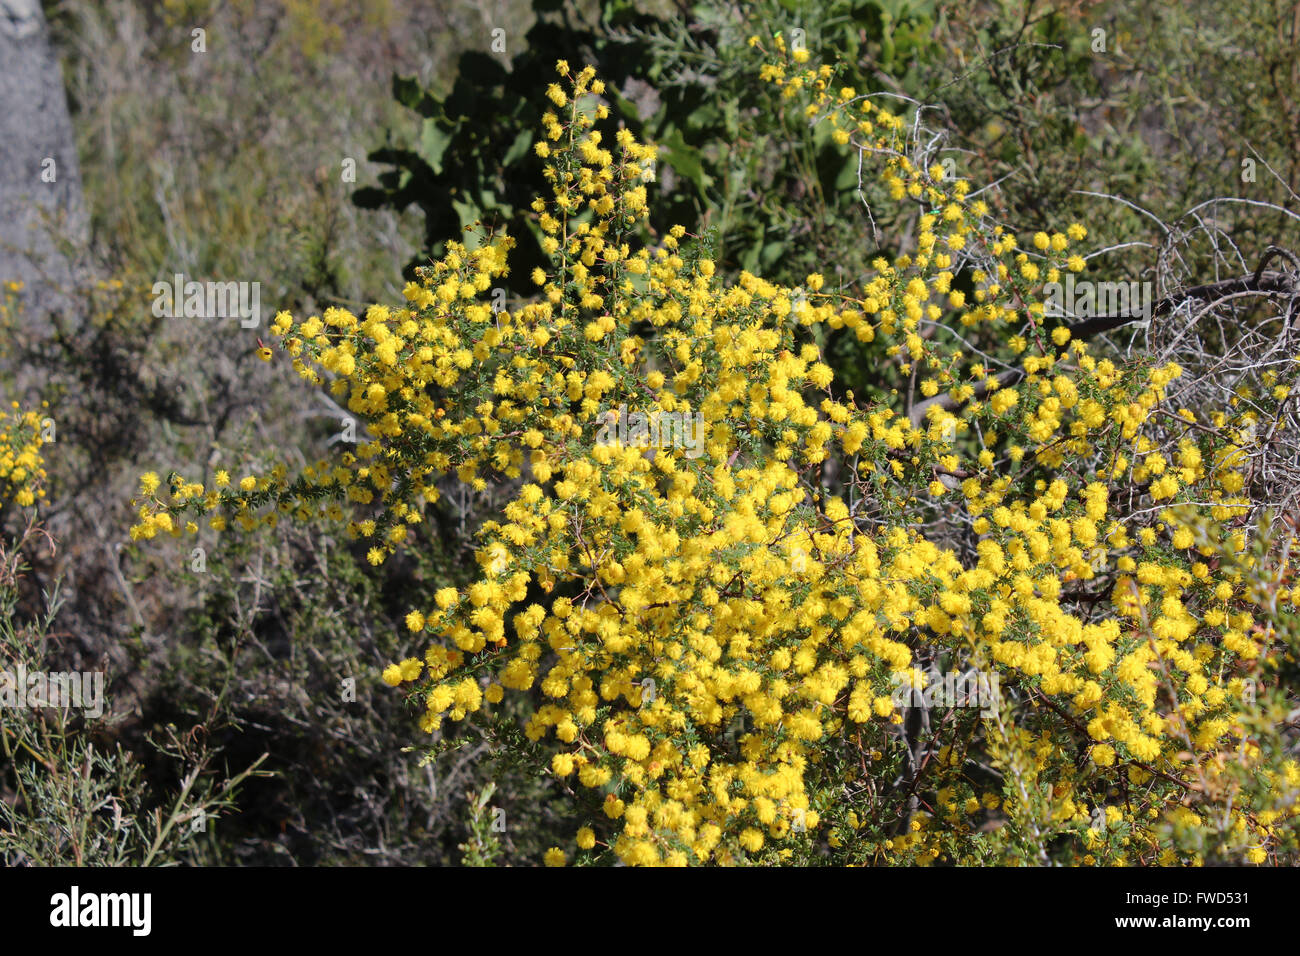 Prickly shrub stock photos prickly shrub stock images alamy fluffy yellow globular flowers of acacia pulchella prickly moses a shrub in the family mightylinksfo